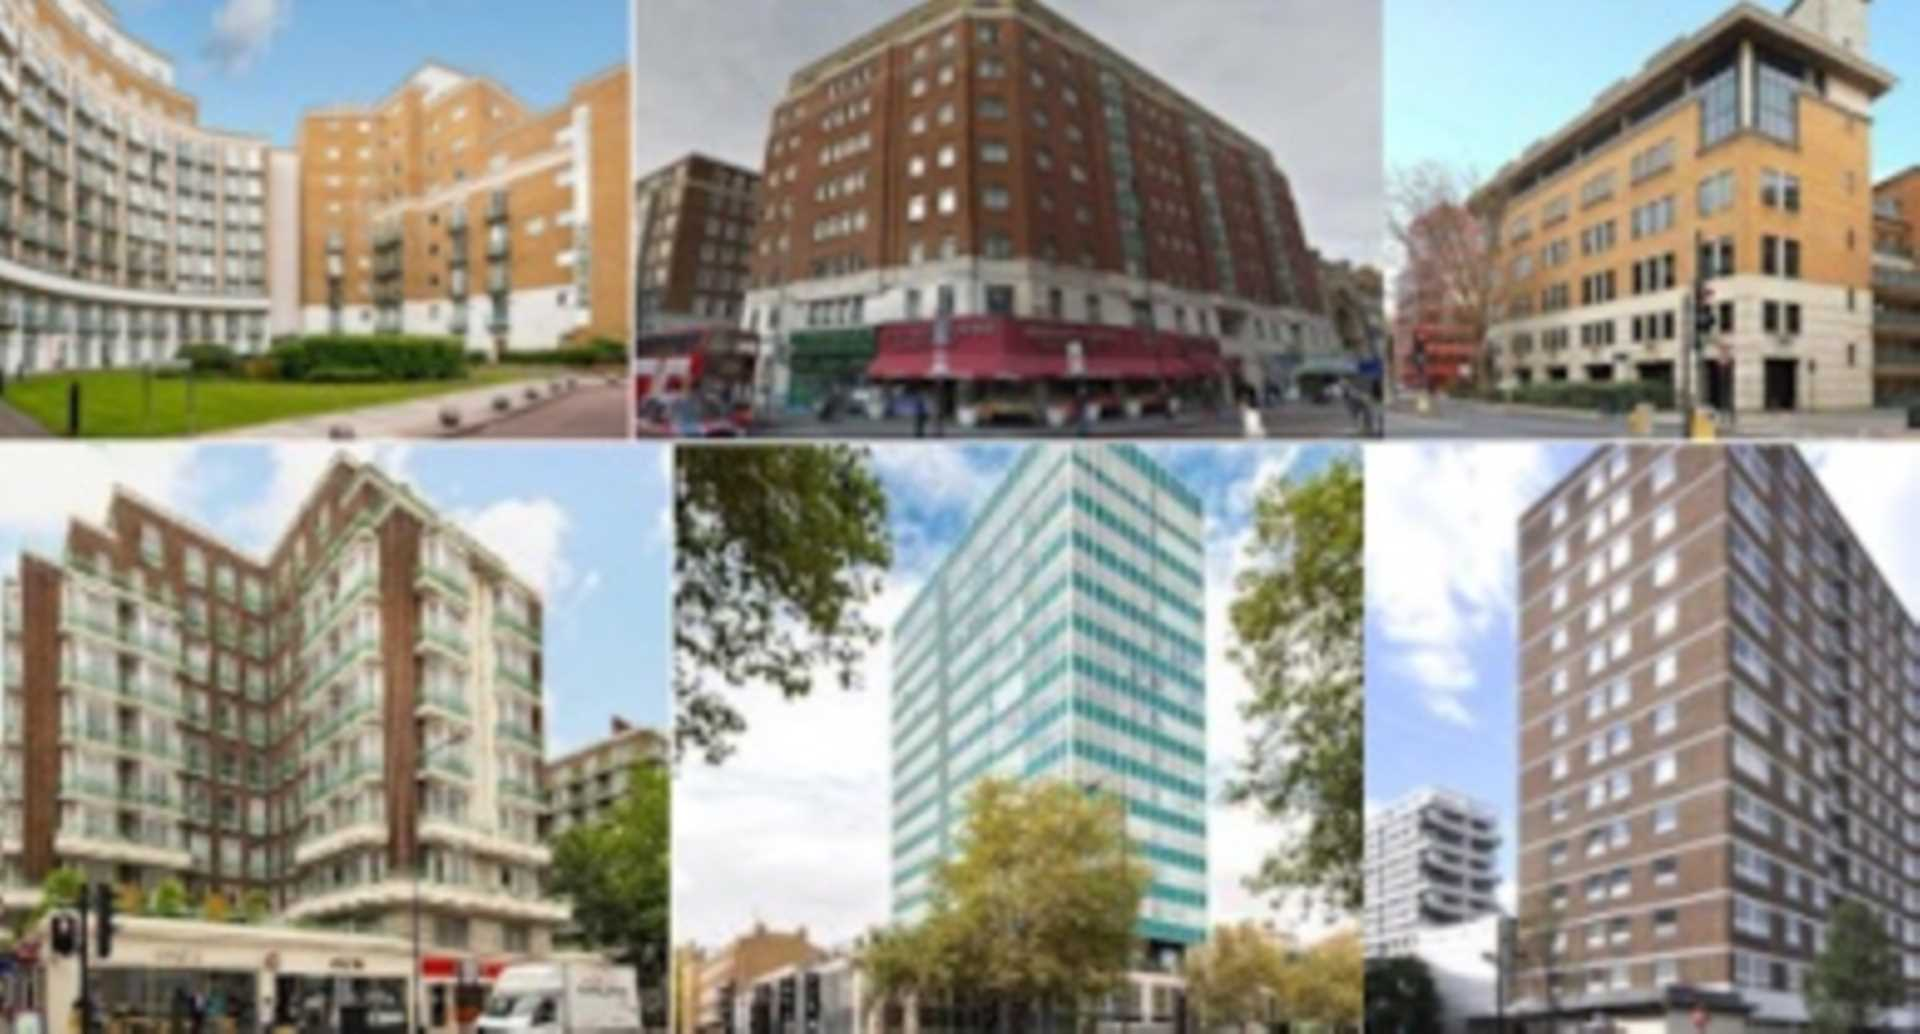 Which Marylebone block of flats, offer the best investment potential? Let`s take a look at the NW1 and W1H postcodes - analysing some of the chief blocks that encompass them!